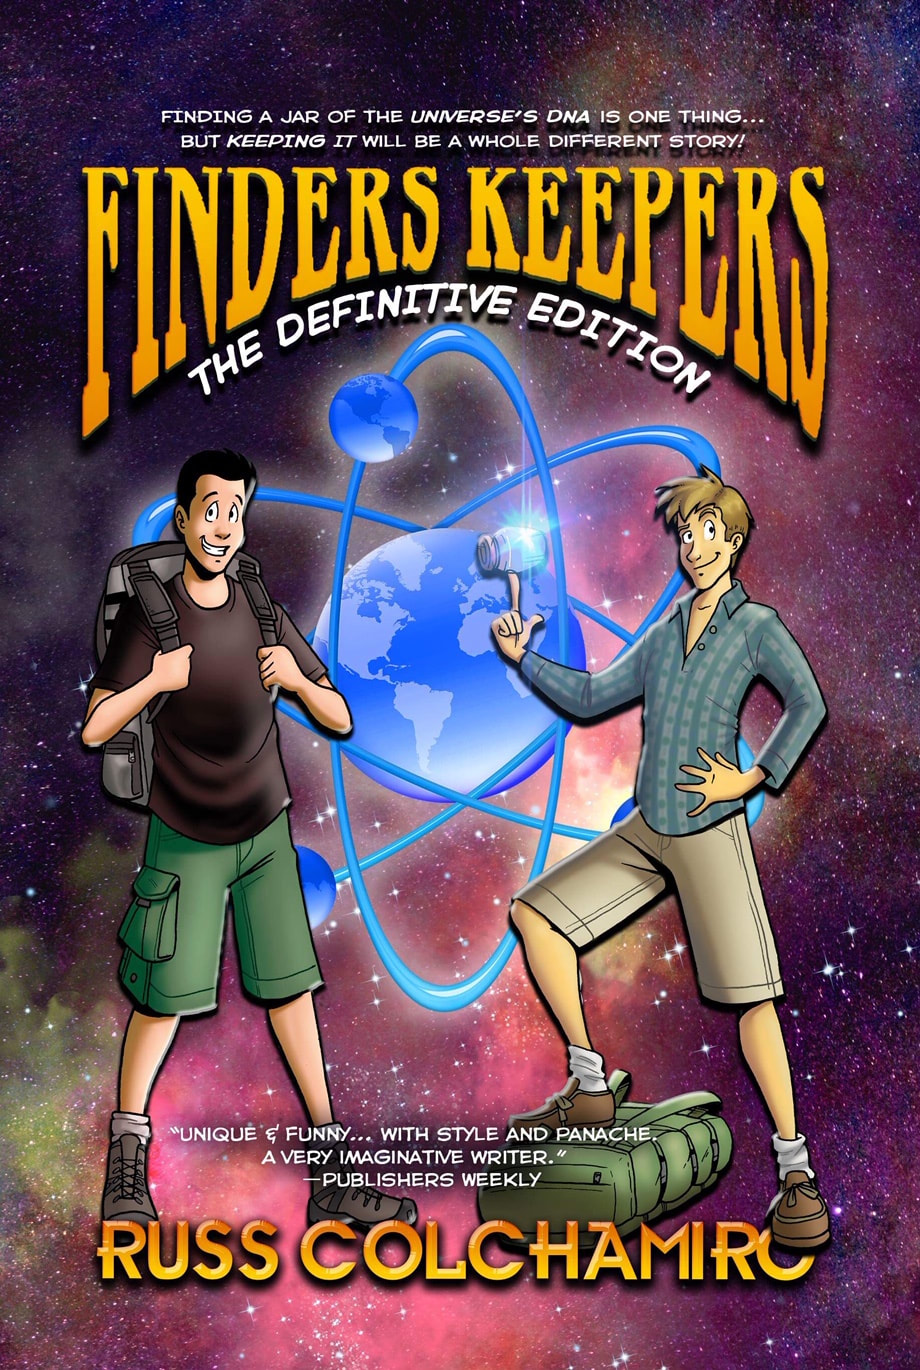 Finders Keepers: The Definitive Edition by Russ Colchamiro